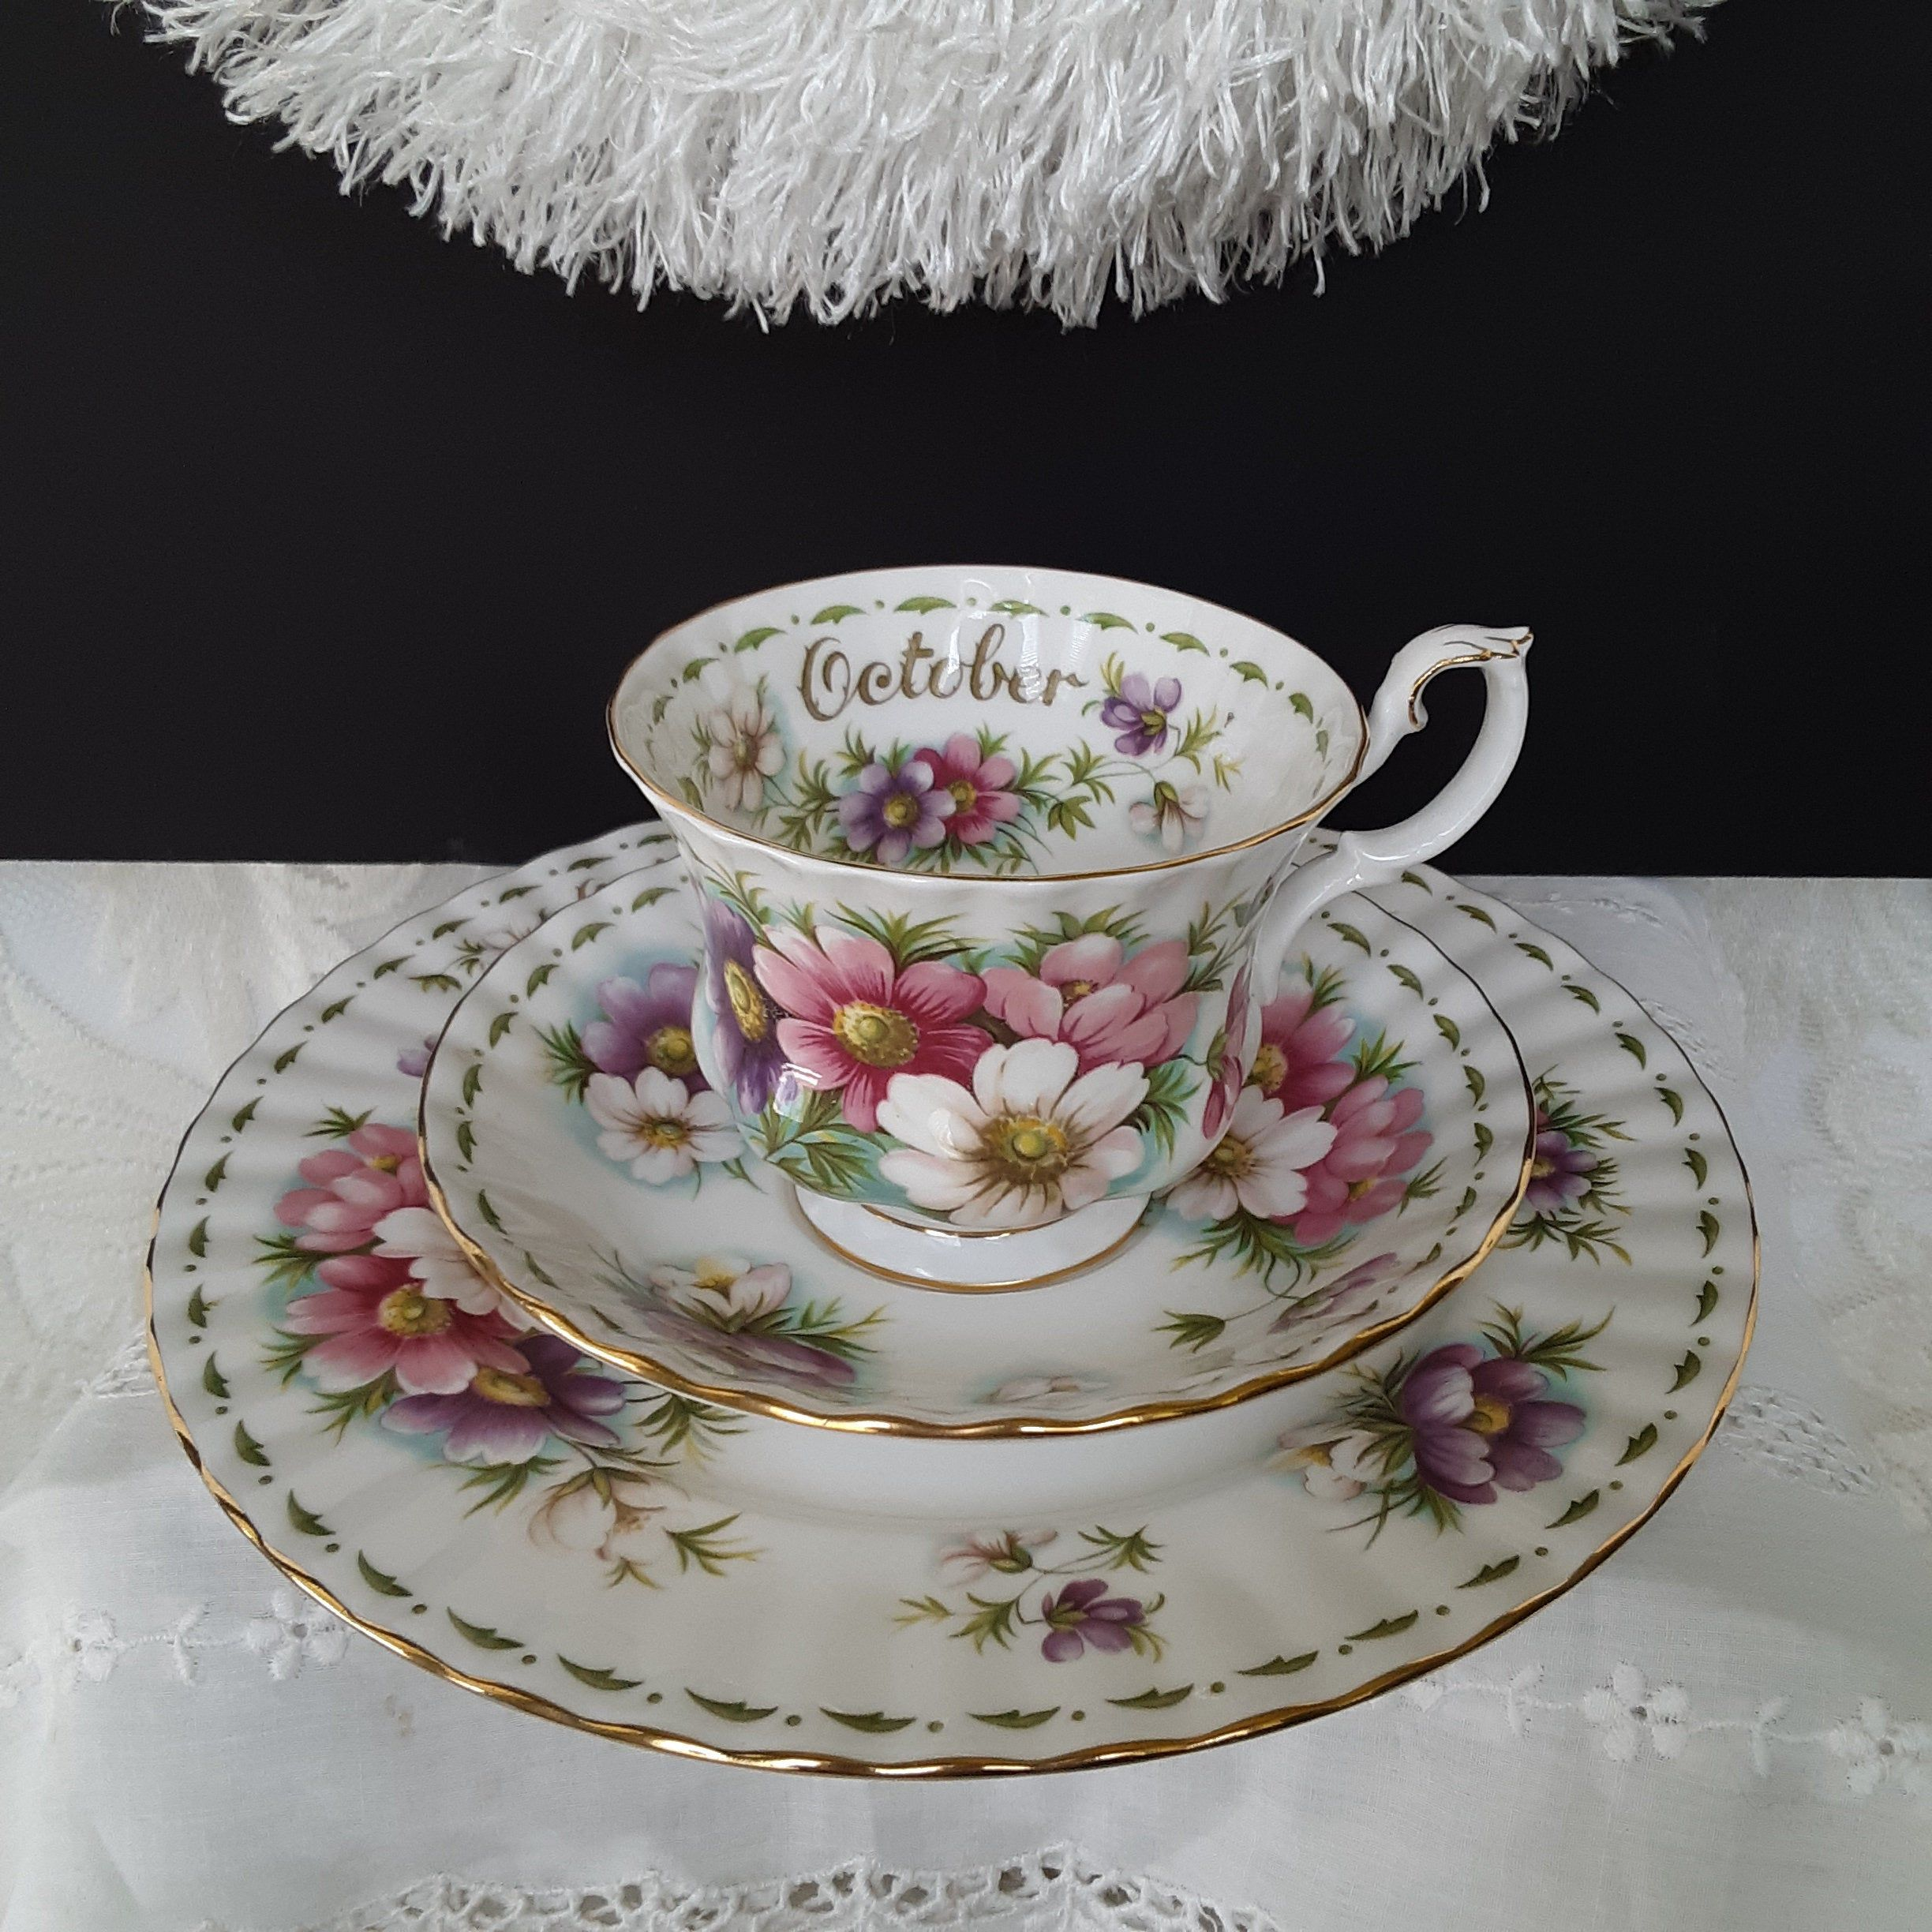 Royal Albert China, October Flower of the Month, Cosmos